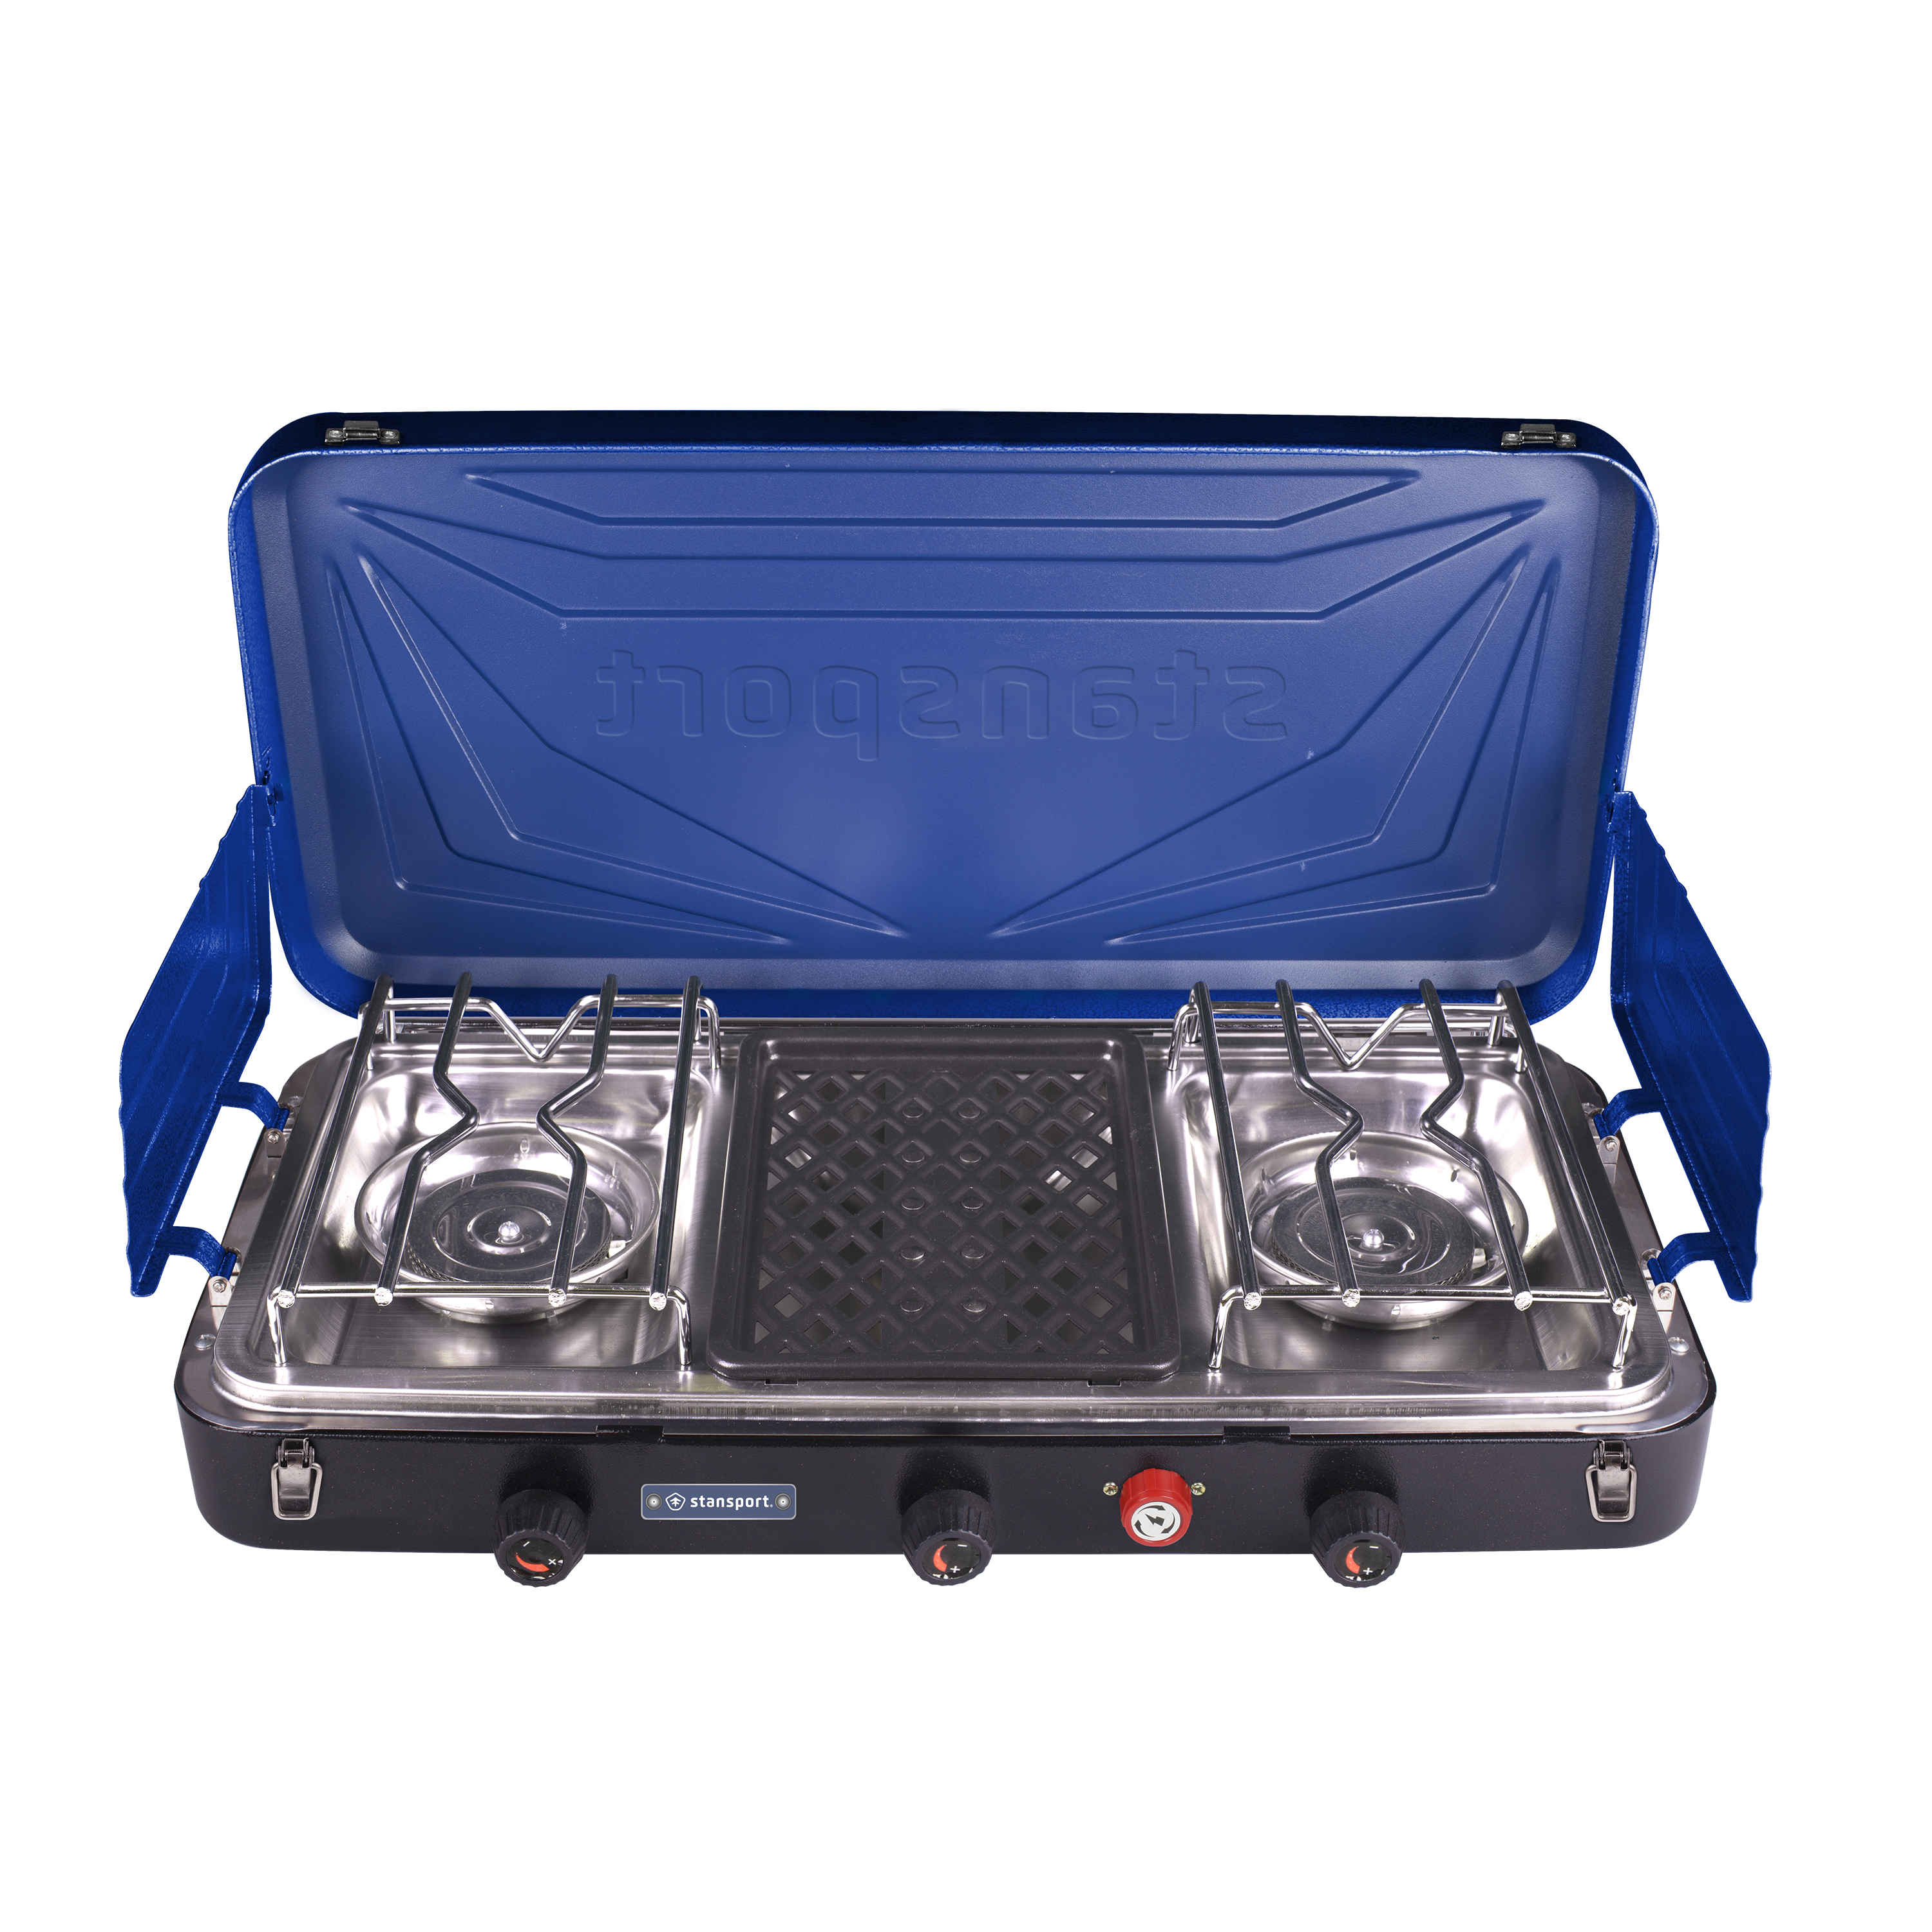 Stansport Outfitter Series Propane Stove 2-25 K & 1-5 K Burners Blue by Stansport